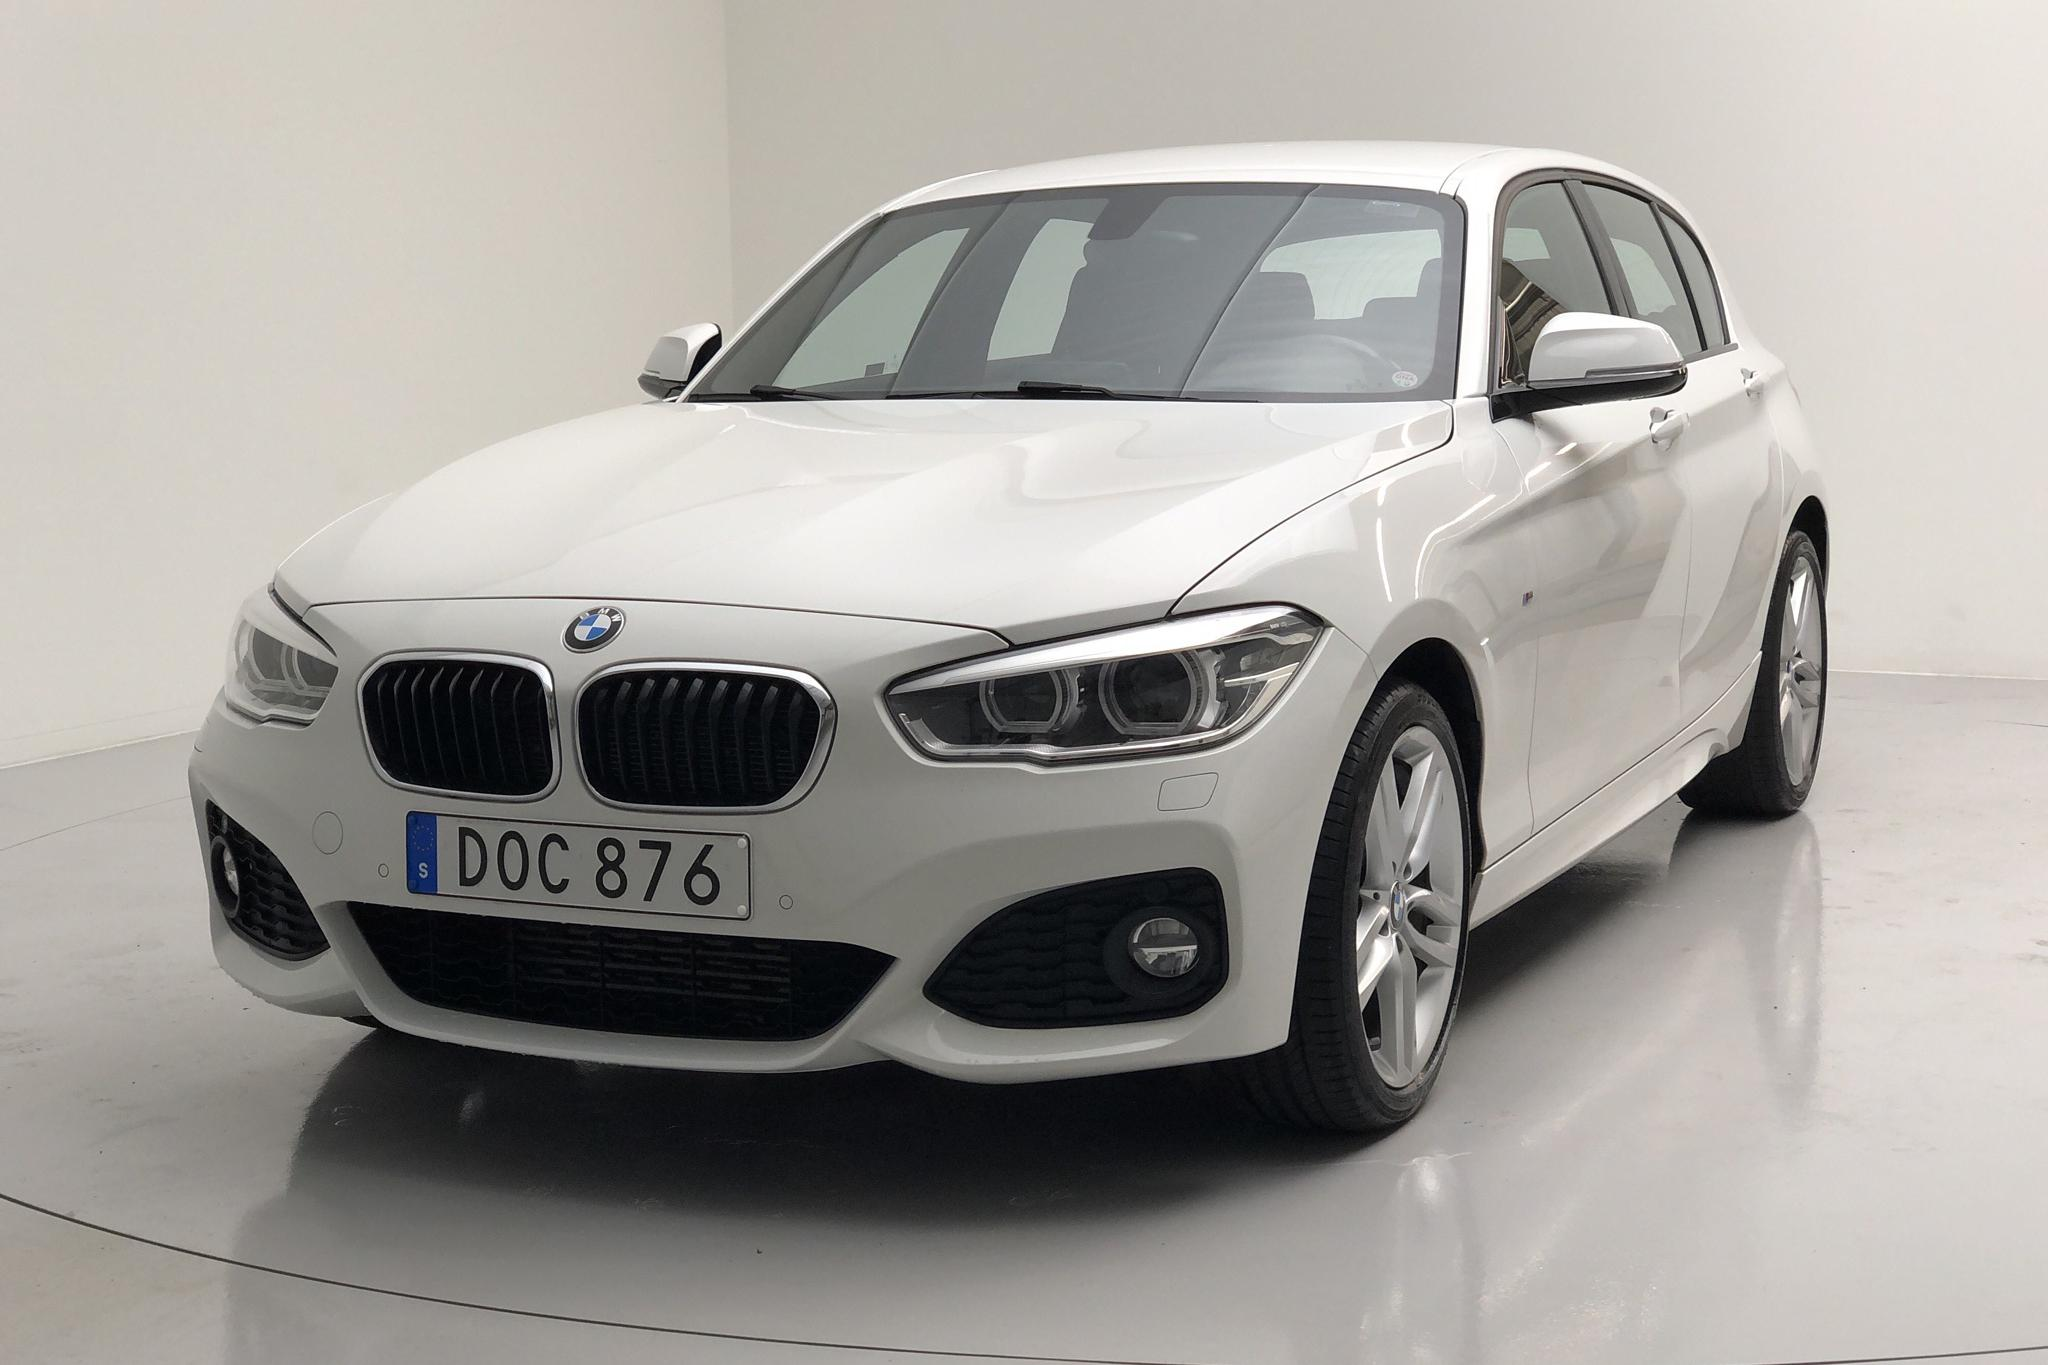 BMW 118d xDrive 5dr, F20 (150hk) - 79 800 km - Manual - white - 2017